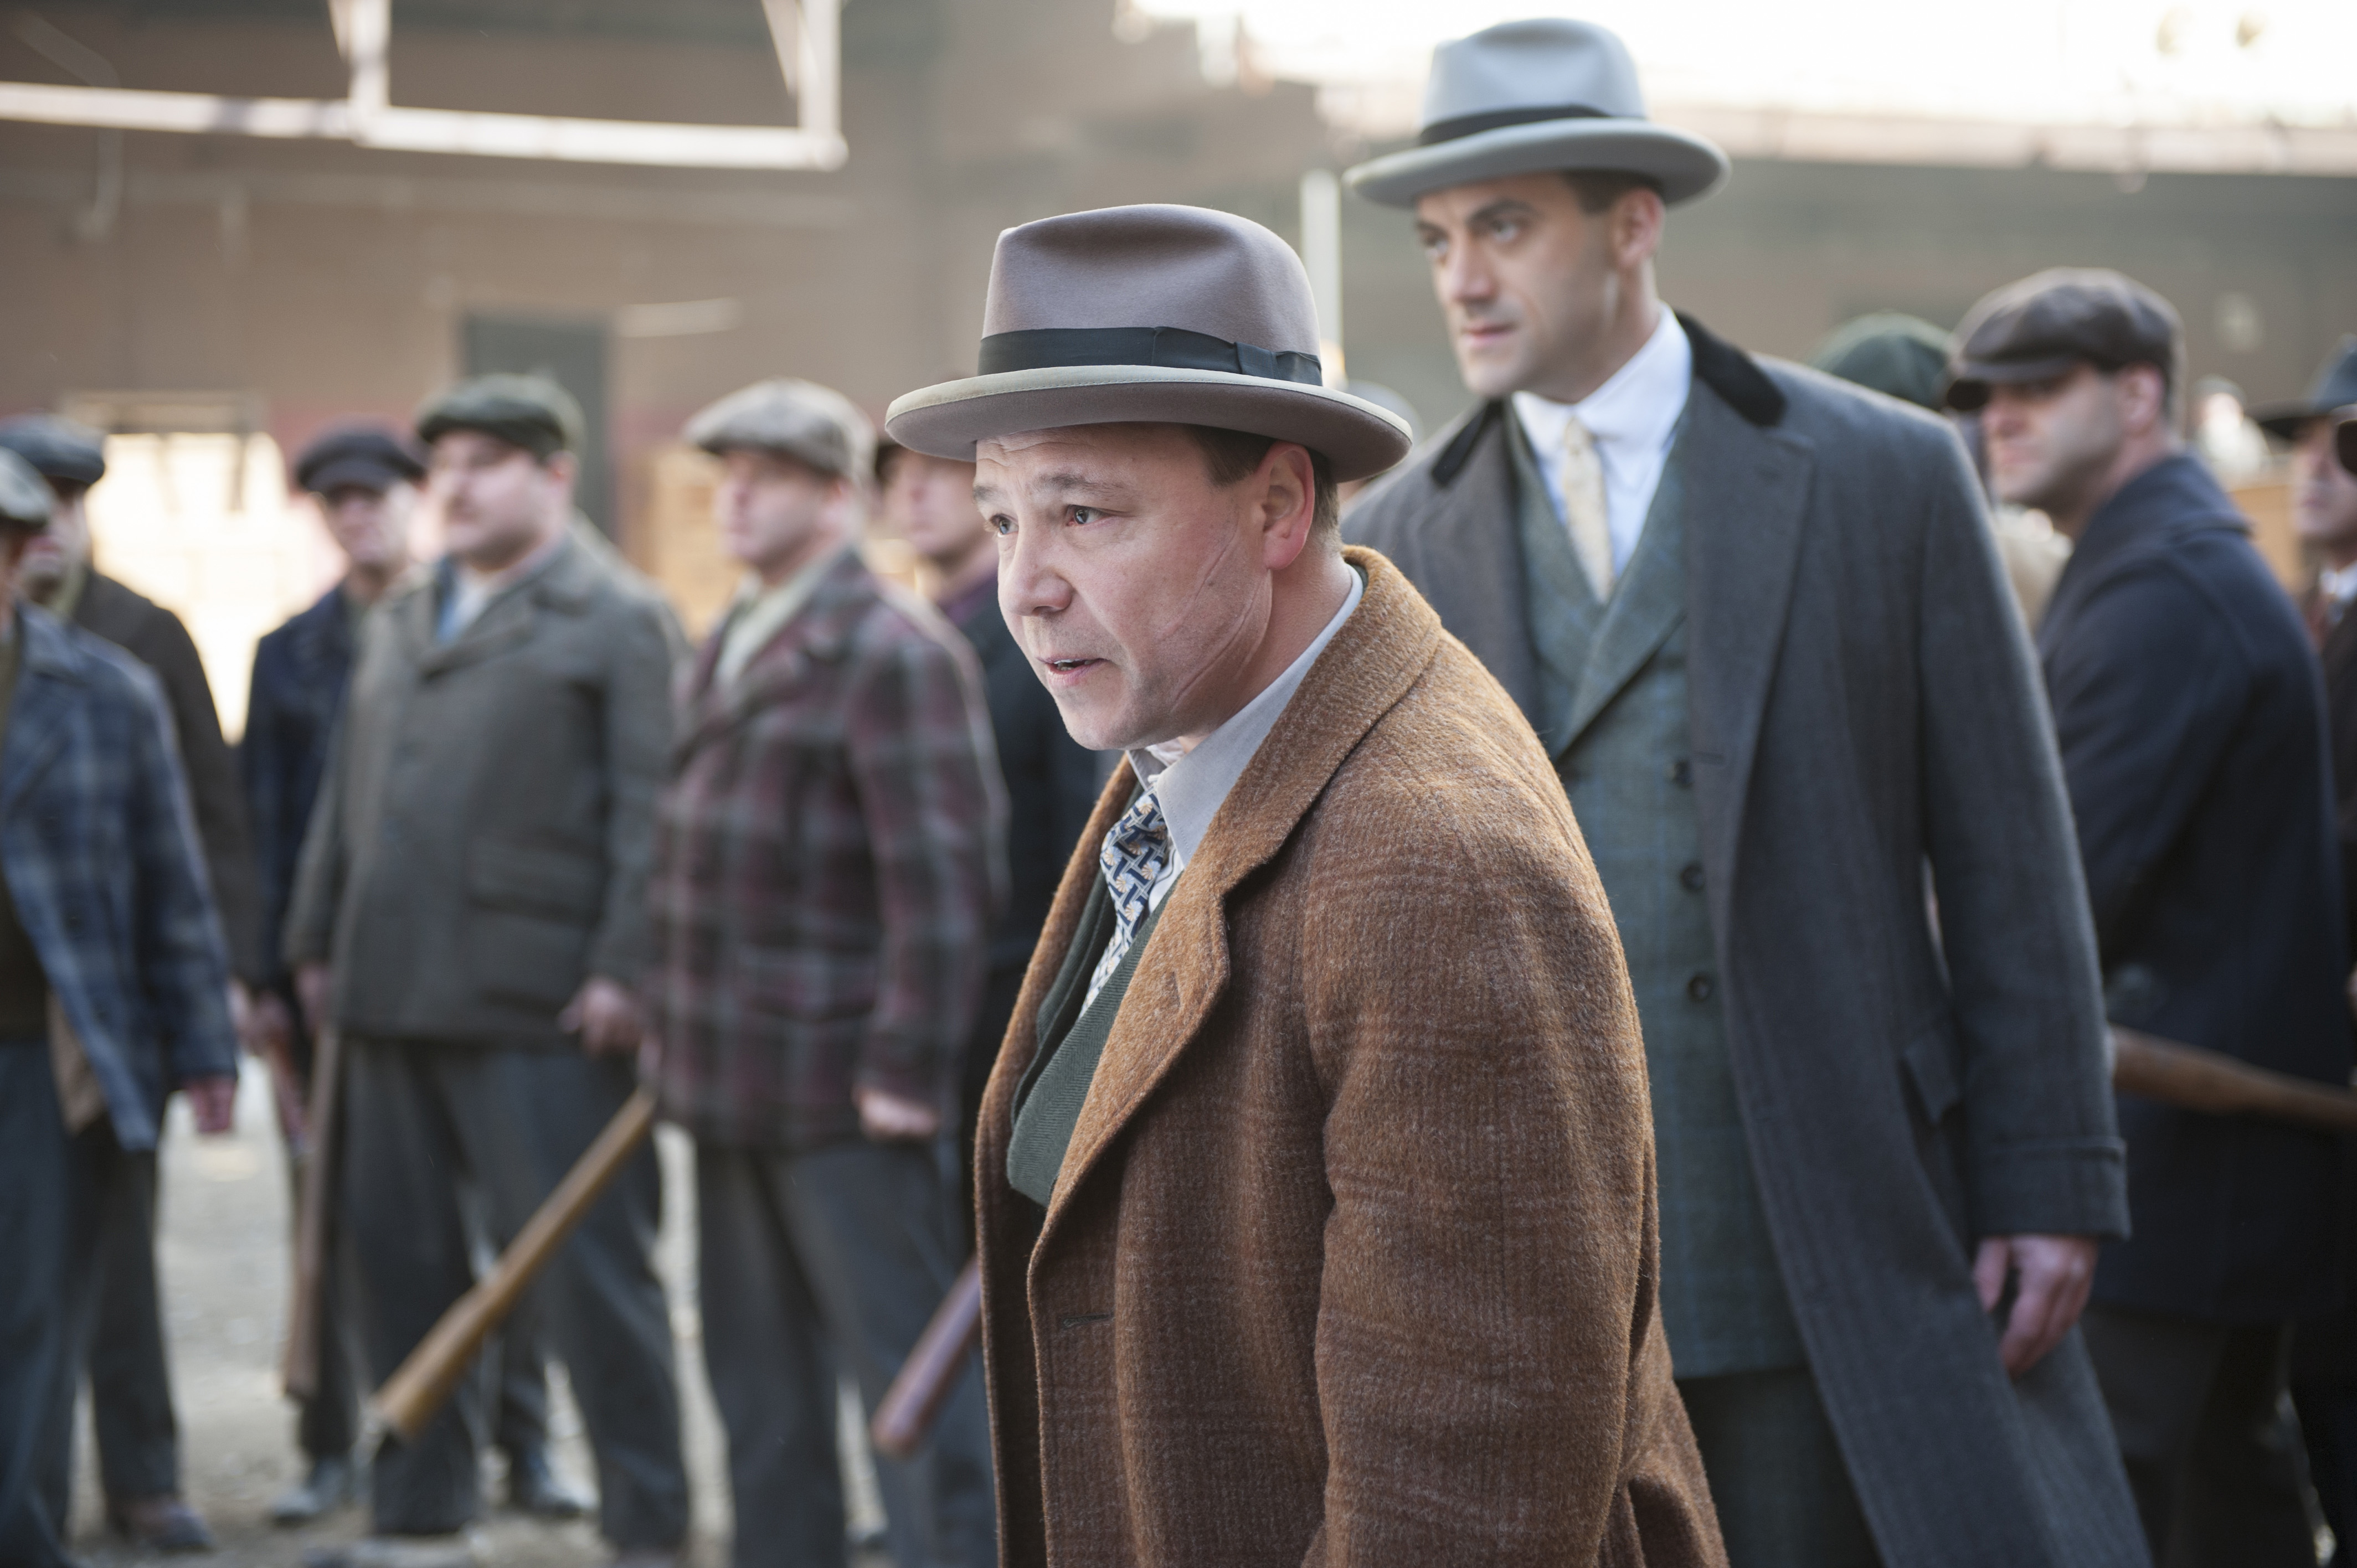 Stephen Graham Hints That He Could Play Al Capone In